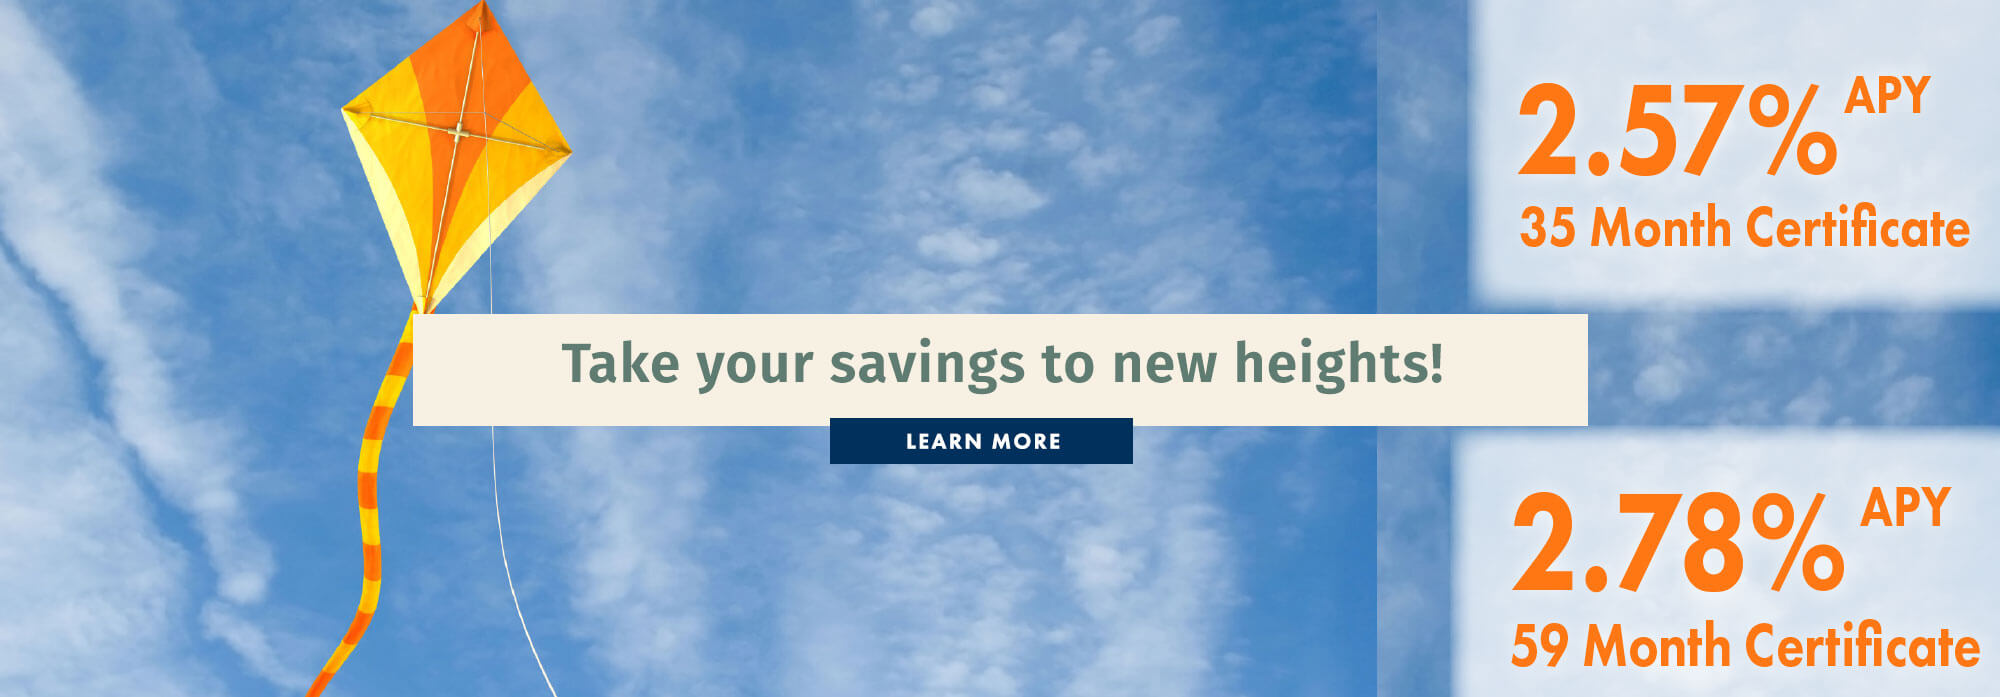 Take your savings to new heights!